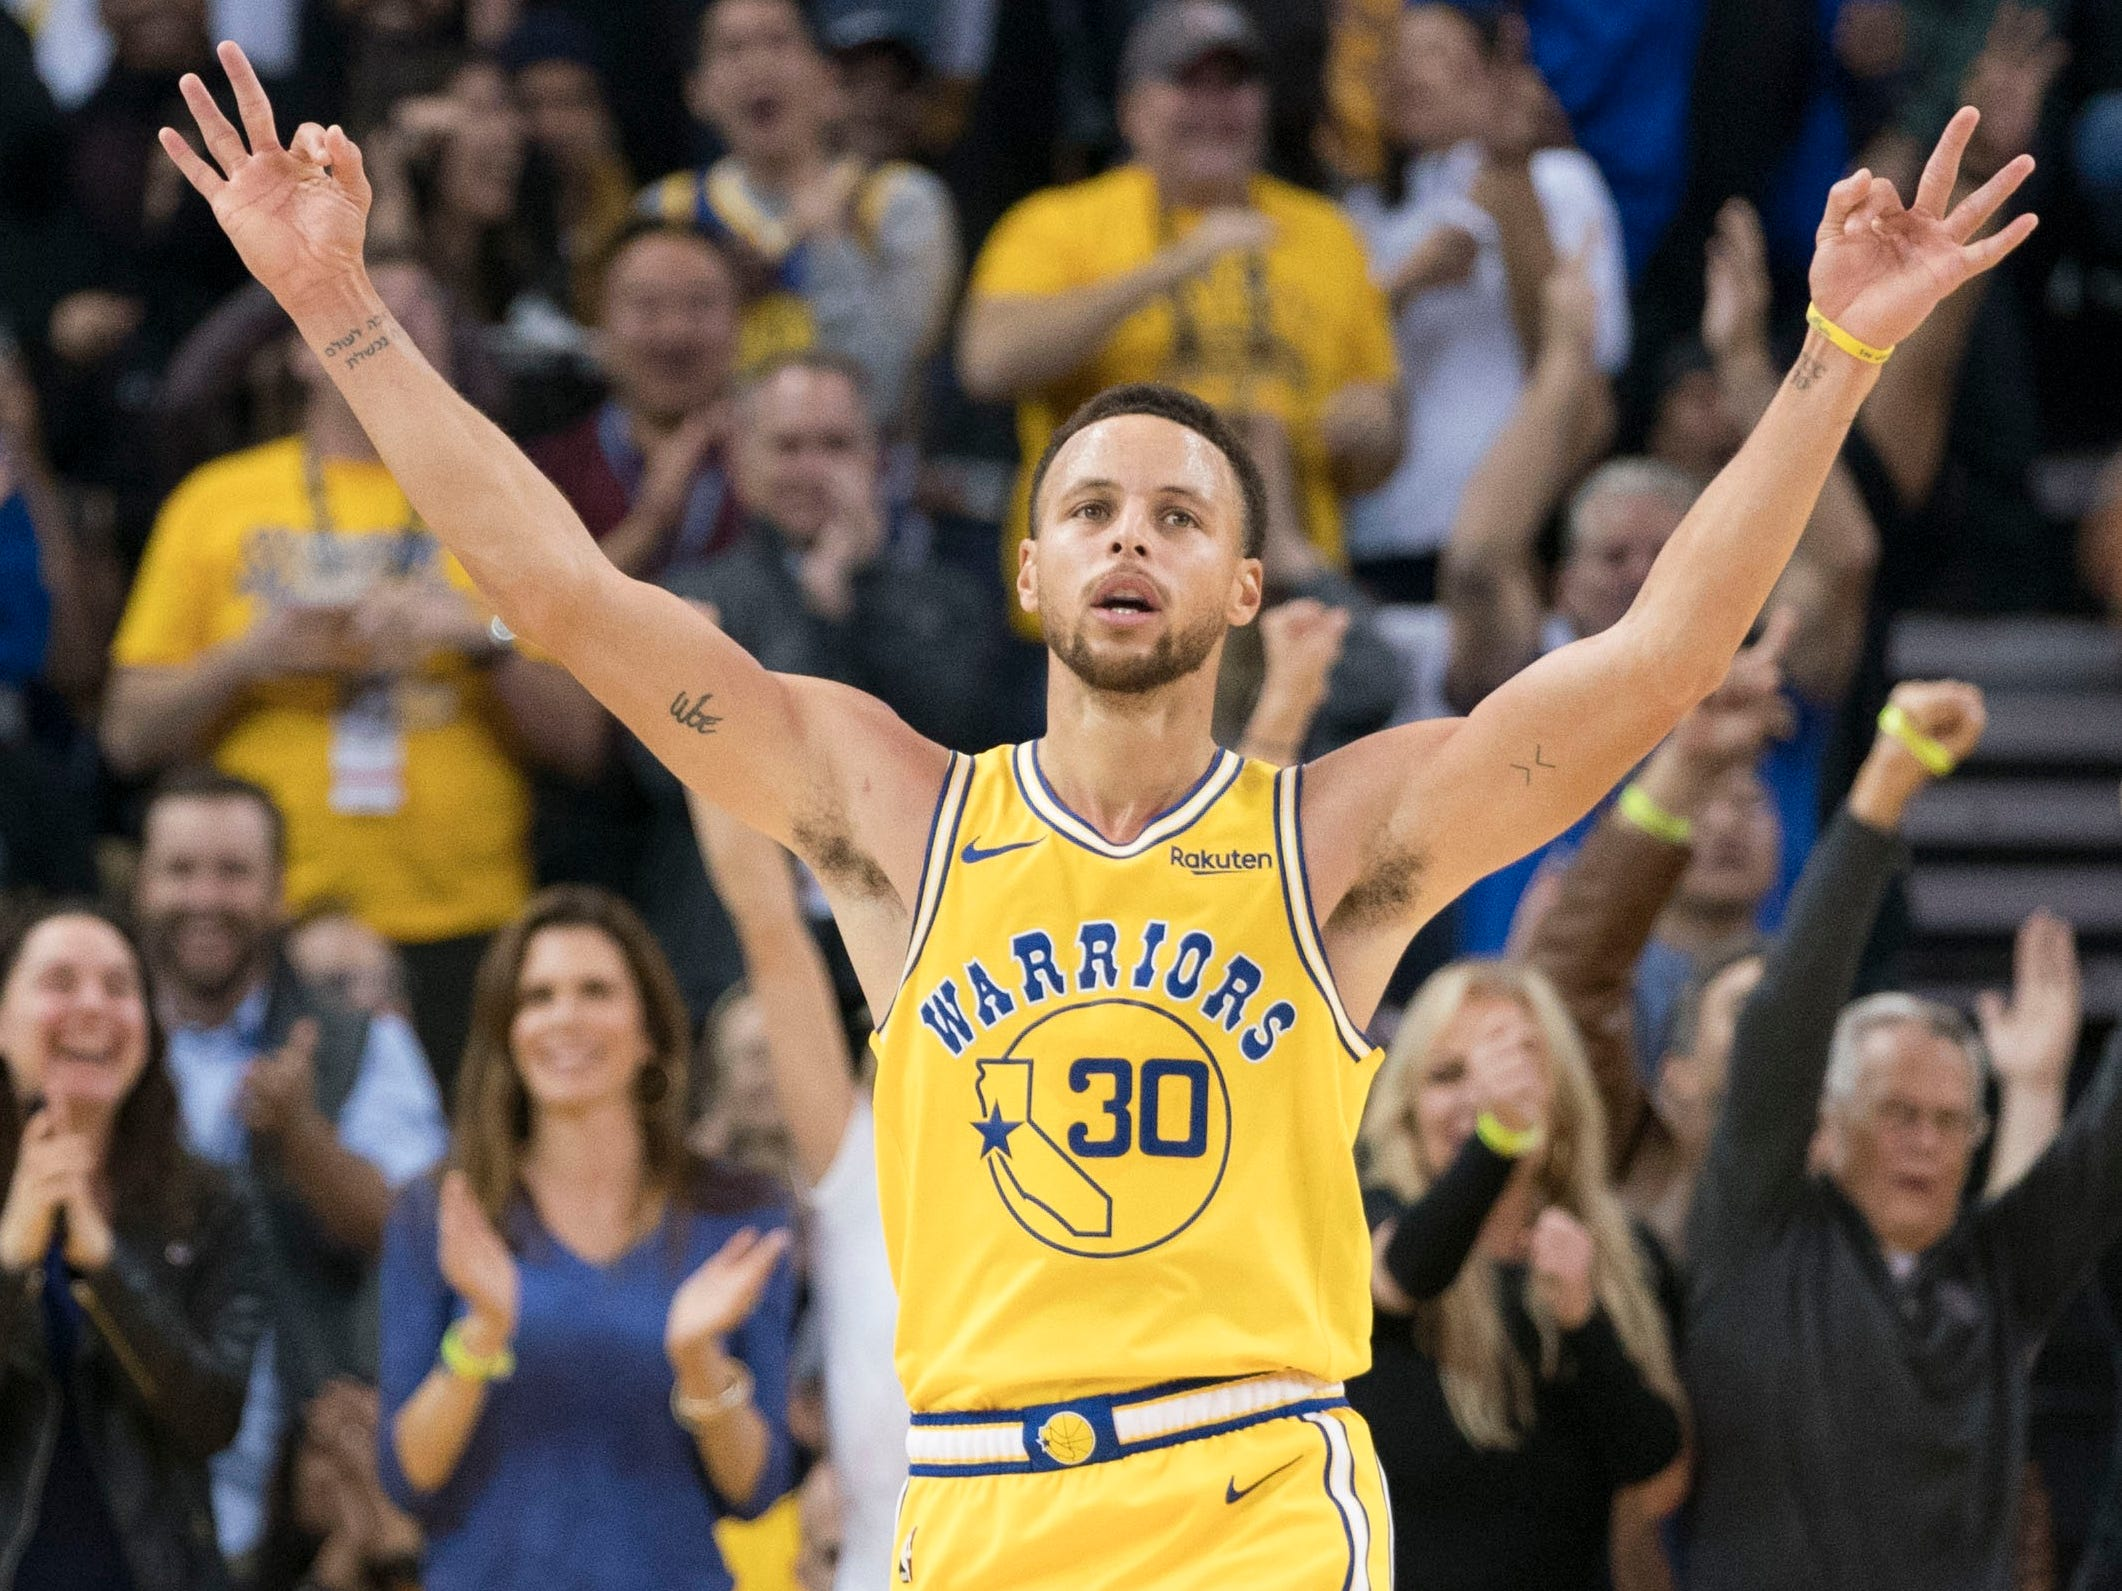 Oct. 24: Warriors guard Steph Curry celebrates after sinking one of his 11 3-pointers in a 51-point effort against the Wizards.